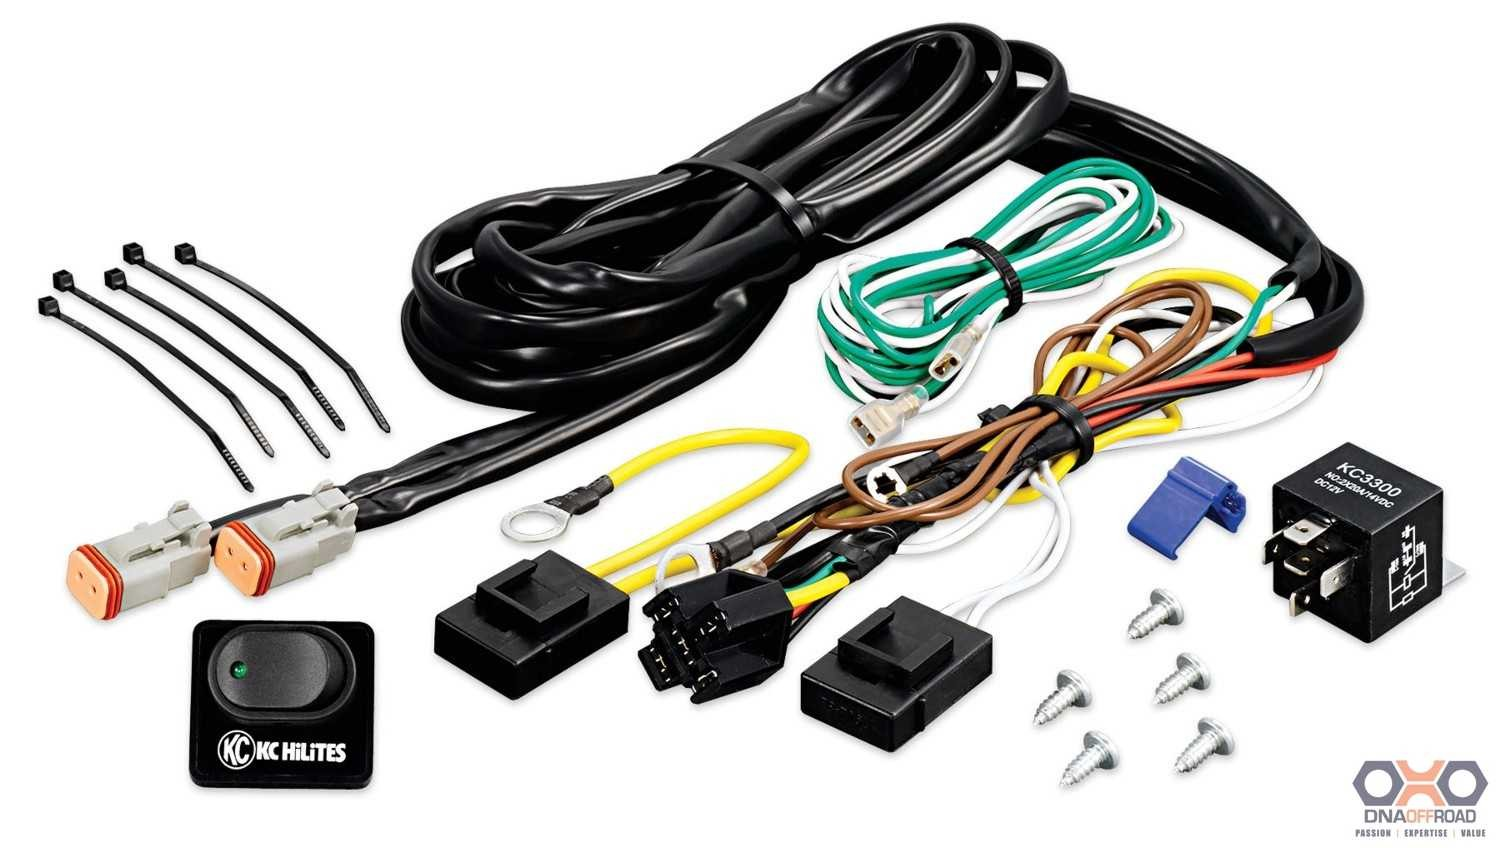 6315_1_1 kc hilites wiring harness with 40amp replay and led rocker switch